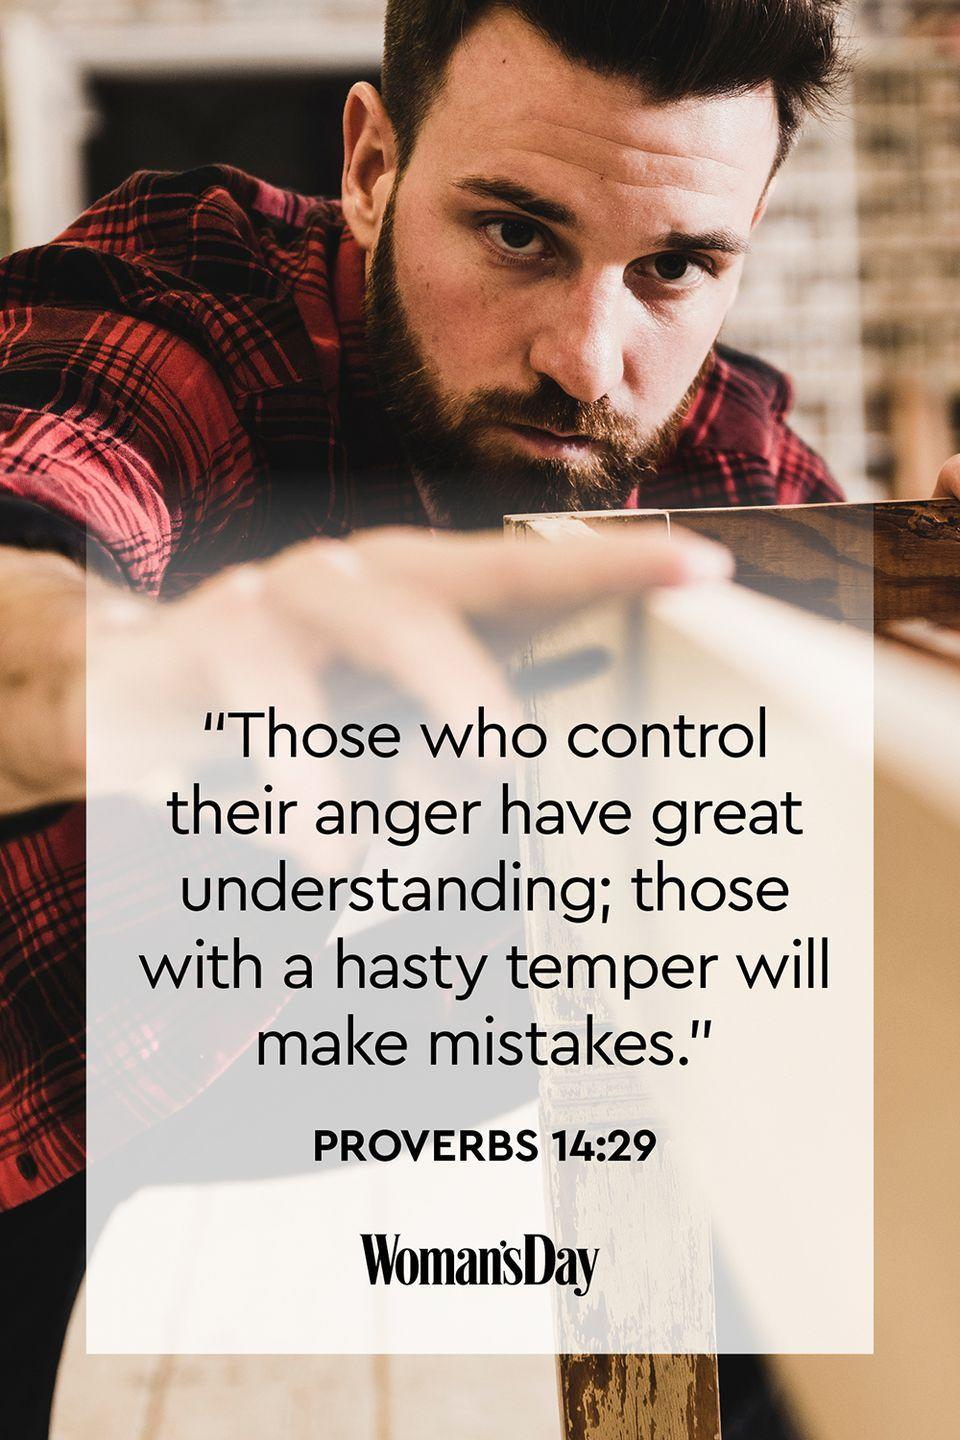 """<p>""""Those who control their anger have great understanding; those with a hasty temper will make mistakes.""""</p><p><strong>The Good News</strong>: We only have great power when we control our emotions and have patience, unlike those who let their anger take over. </p>"""